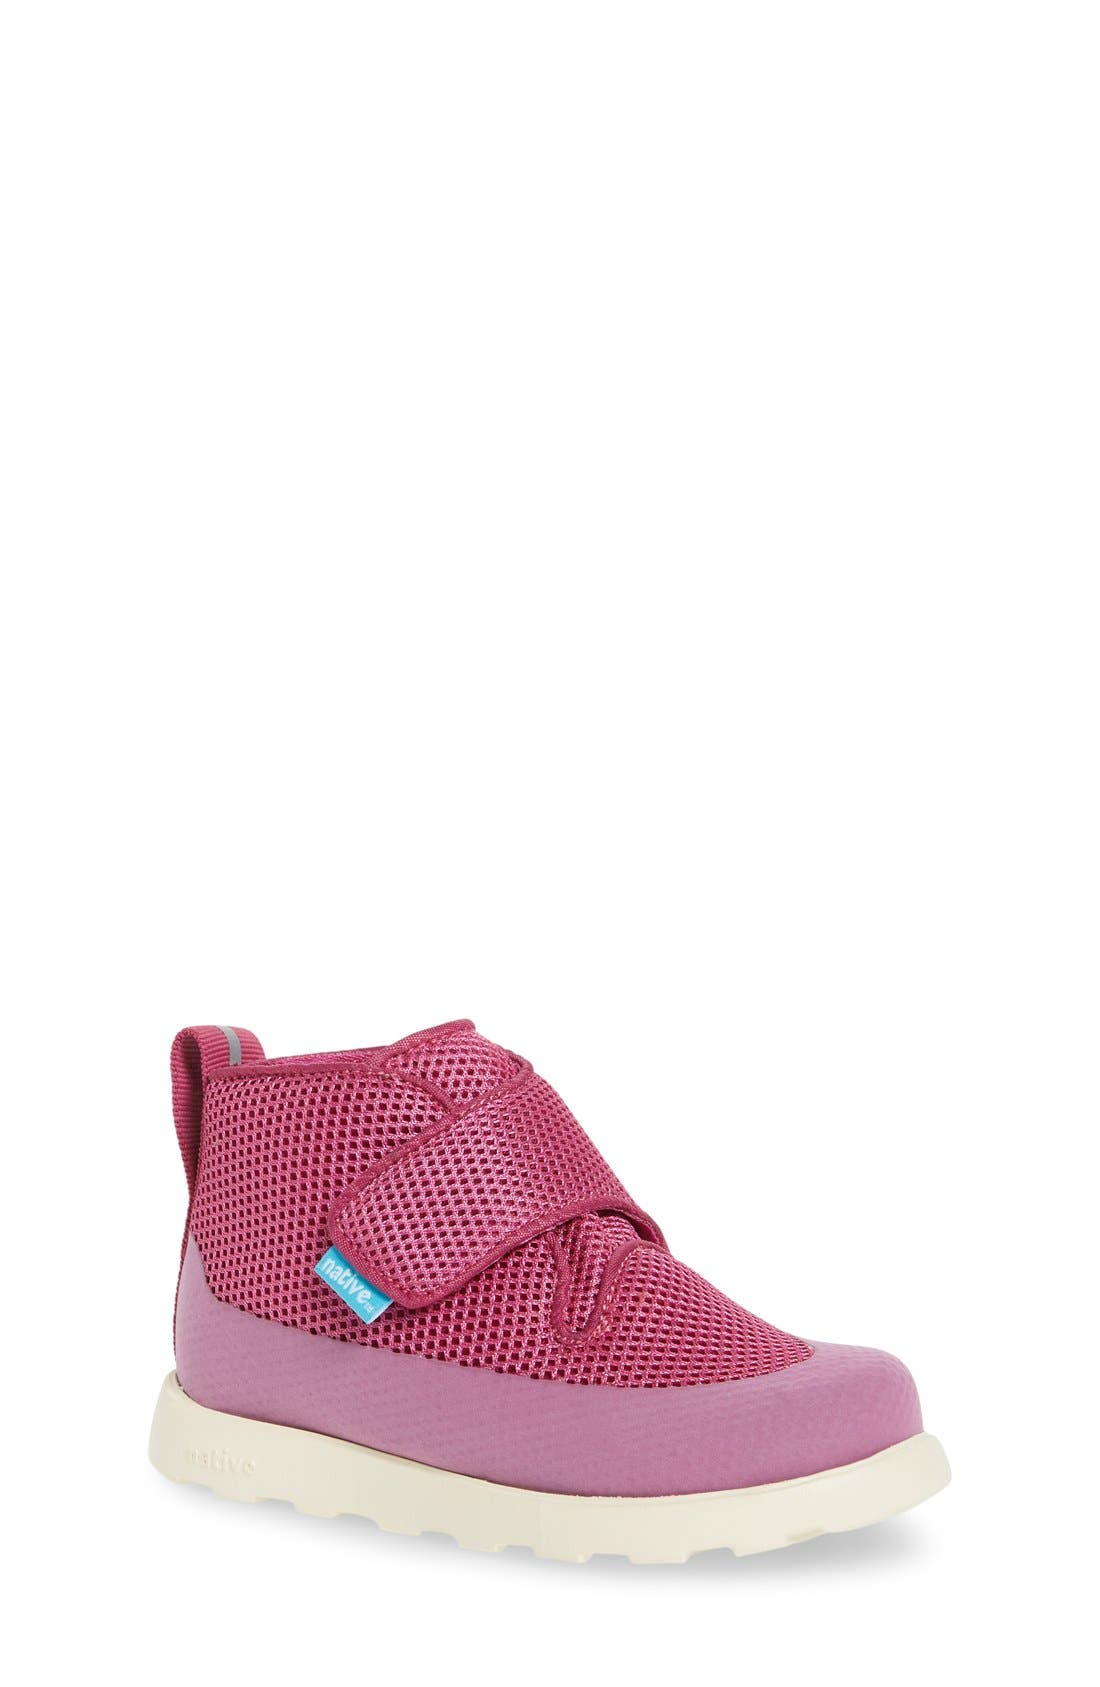 Alternate Image 1 Selected - Native Shoes 'Fitzroy Fast' Water Resistant Boot (Walker & Toddler)